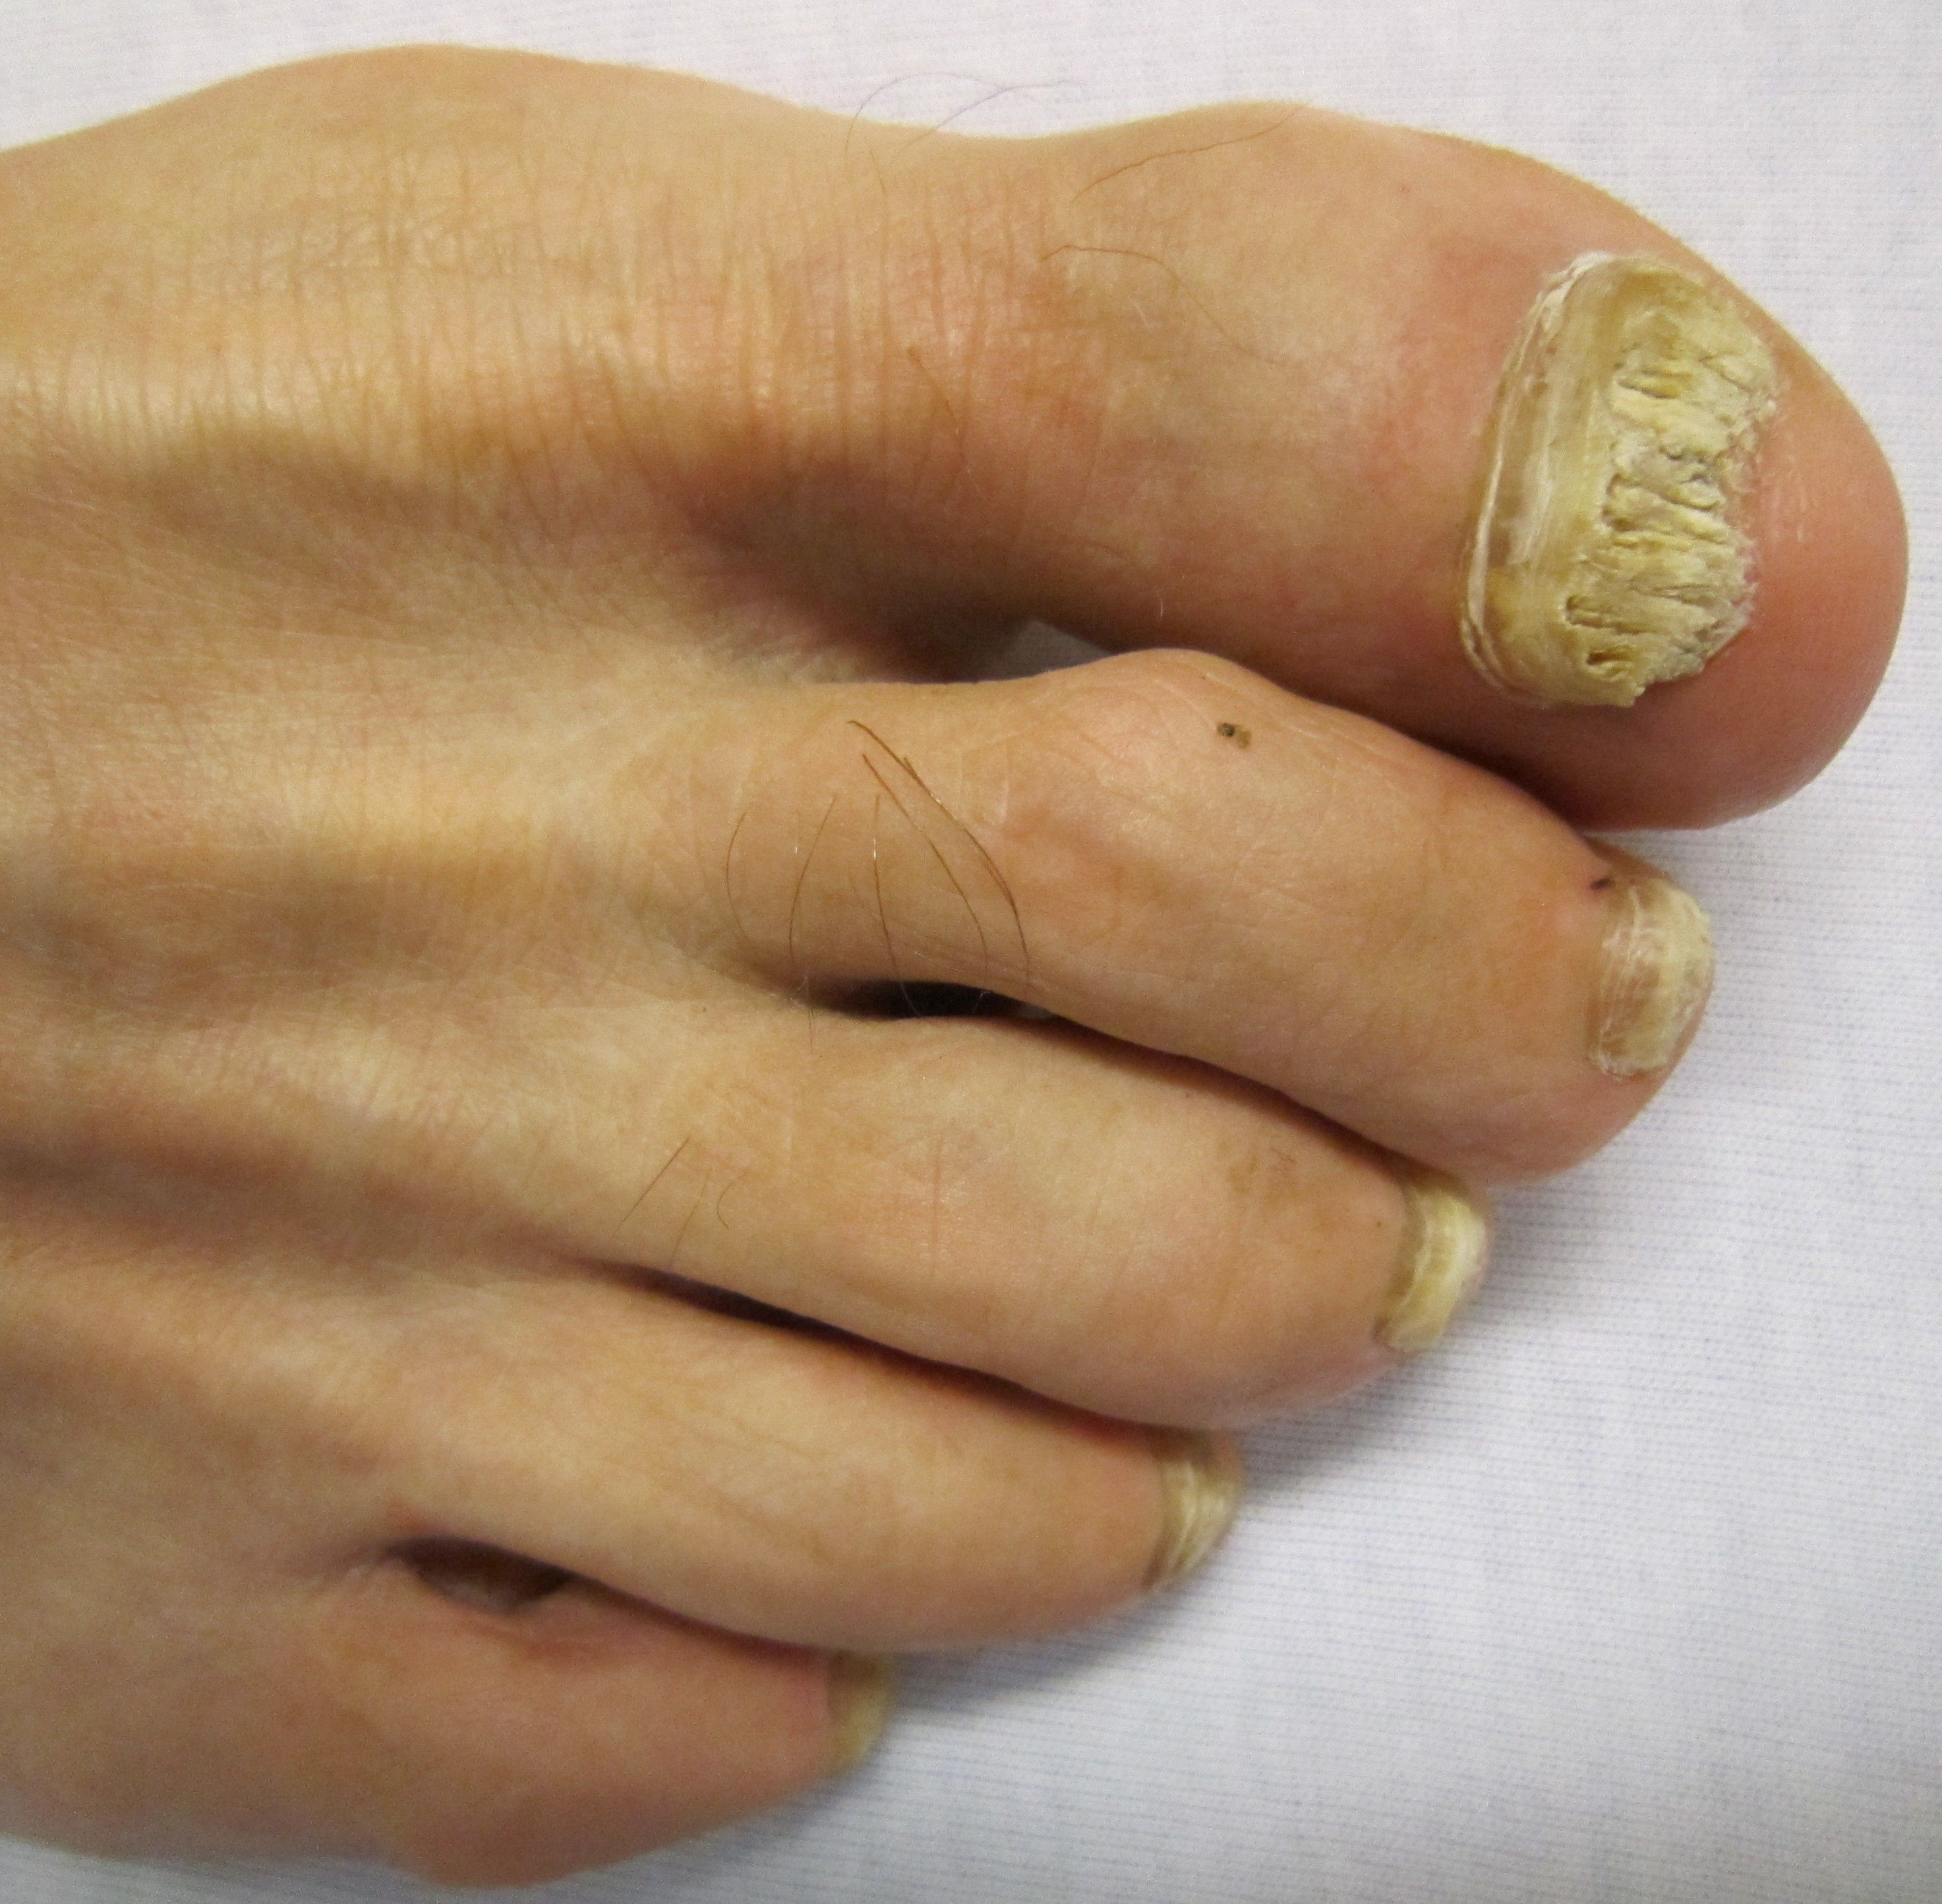 Yellow Toenails: Causes, Symptoms, Treatment and Prevention ...